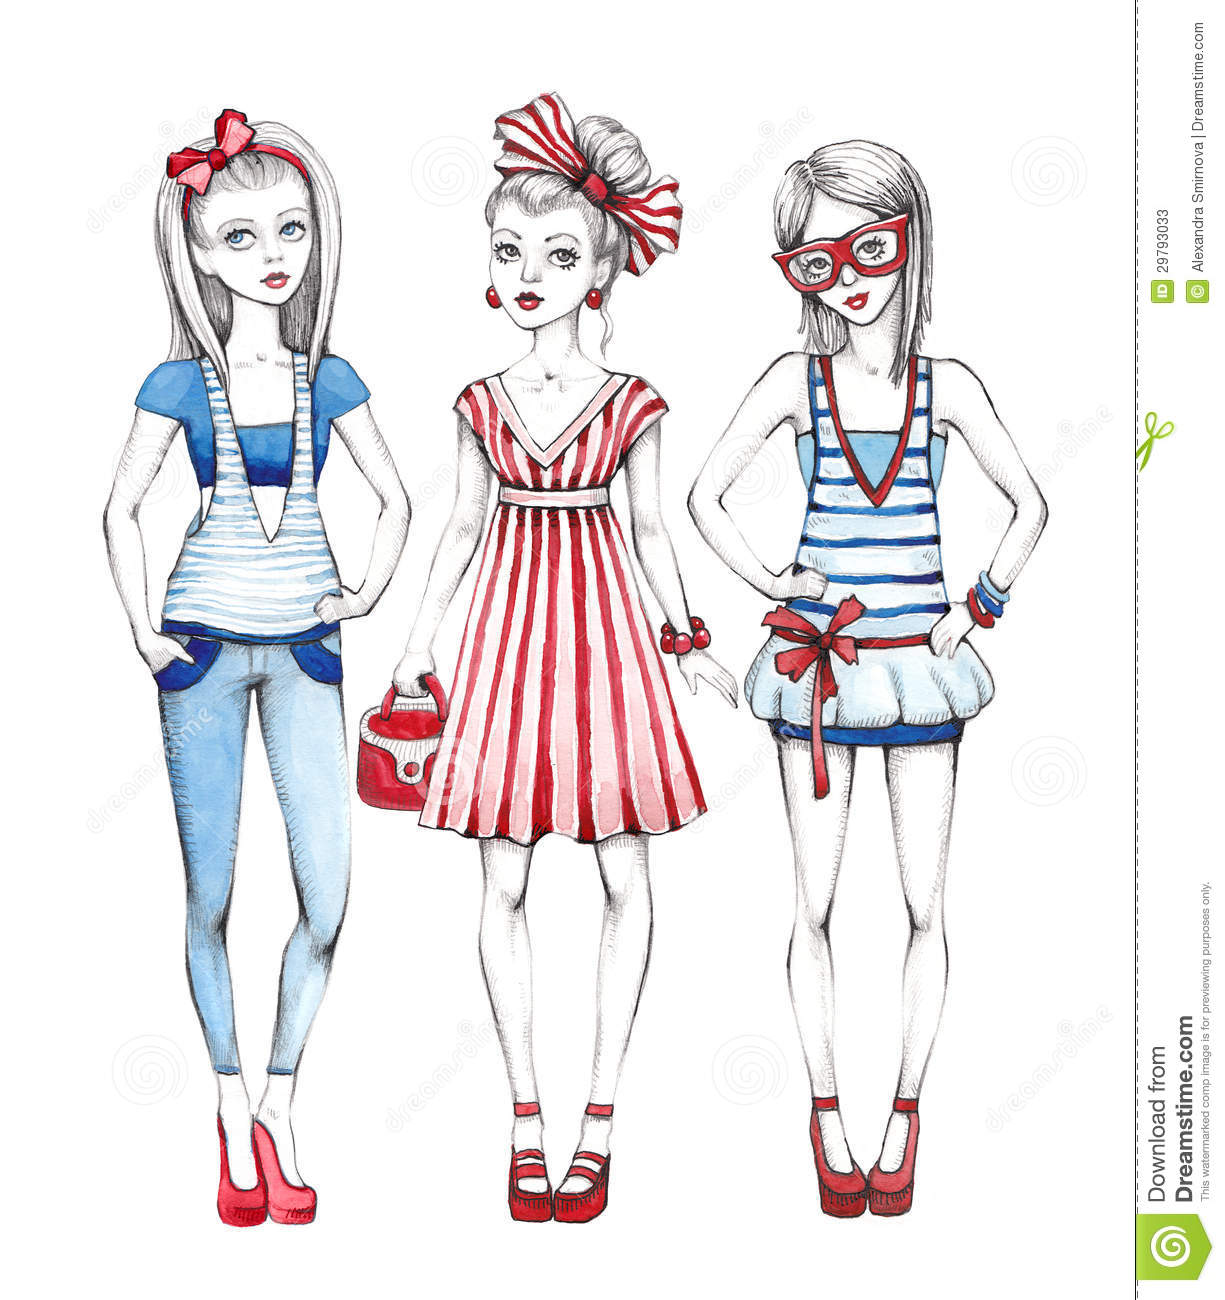 Line Art Fashion : Fashion girls illustration stock photos image